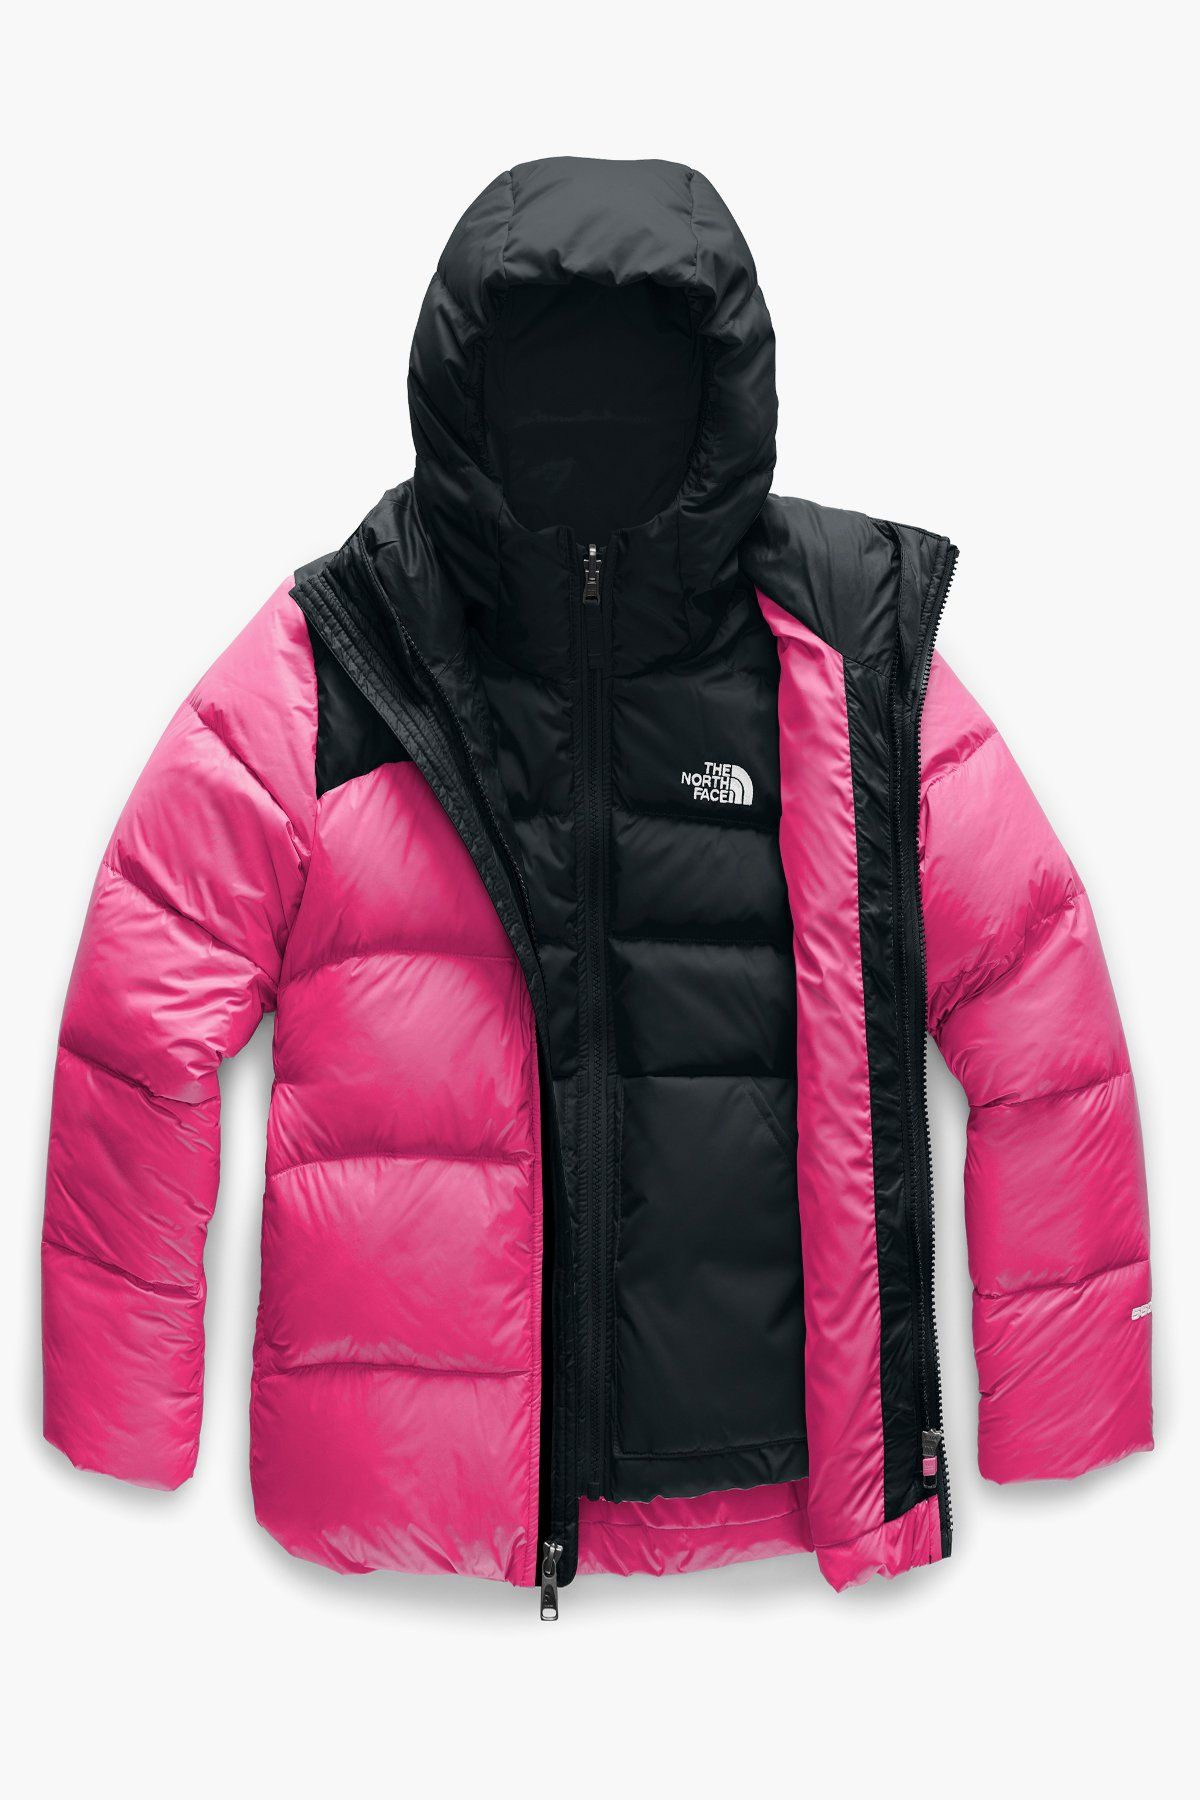 The North Face Double Down Triclimate Girls Jacket North Face Girls North Face Puffer Jacket Triclimate Jacket [ 1800 x 1200 Pixel ]